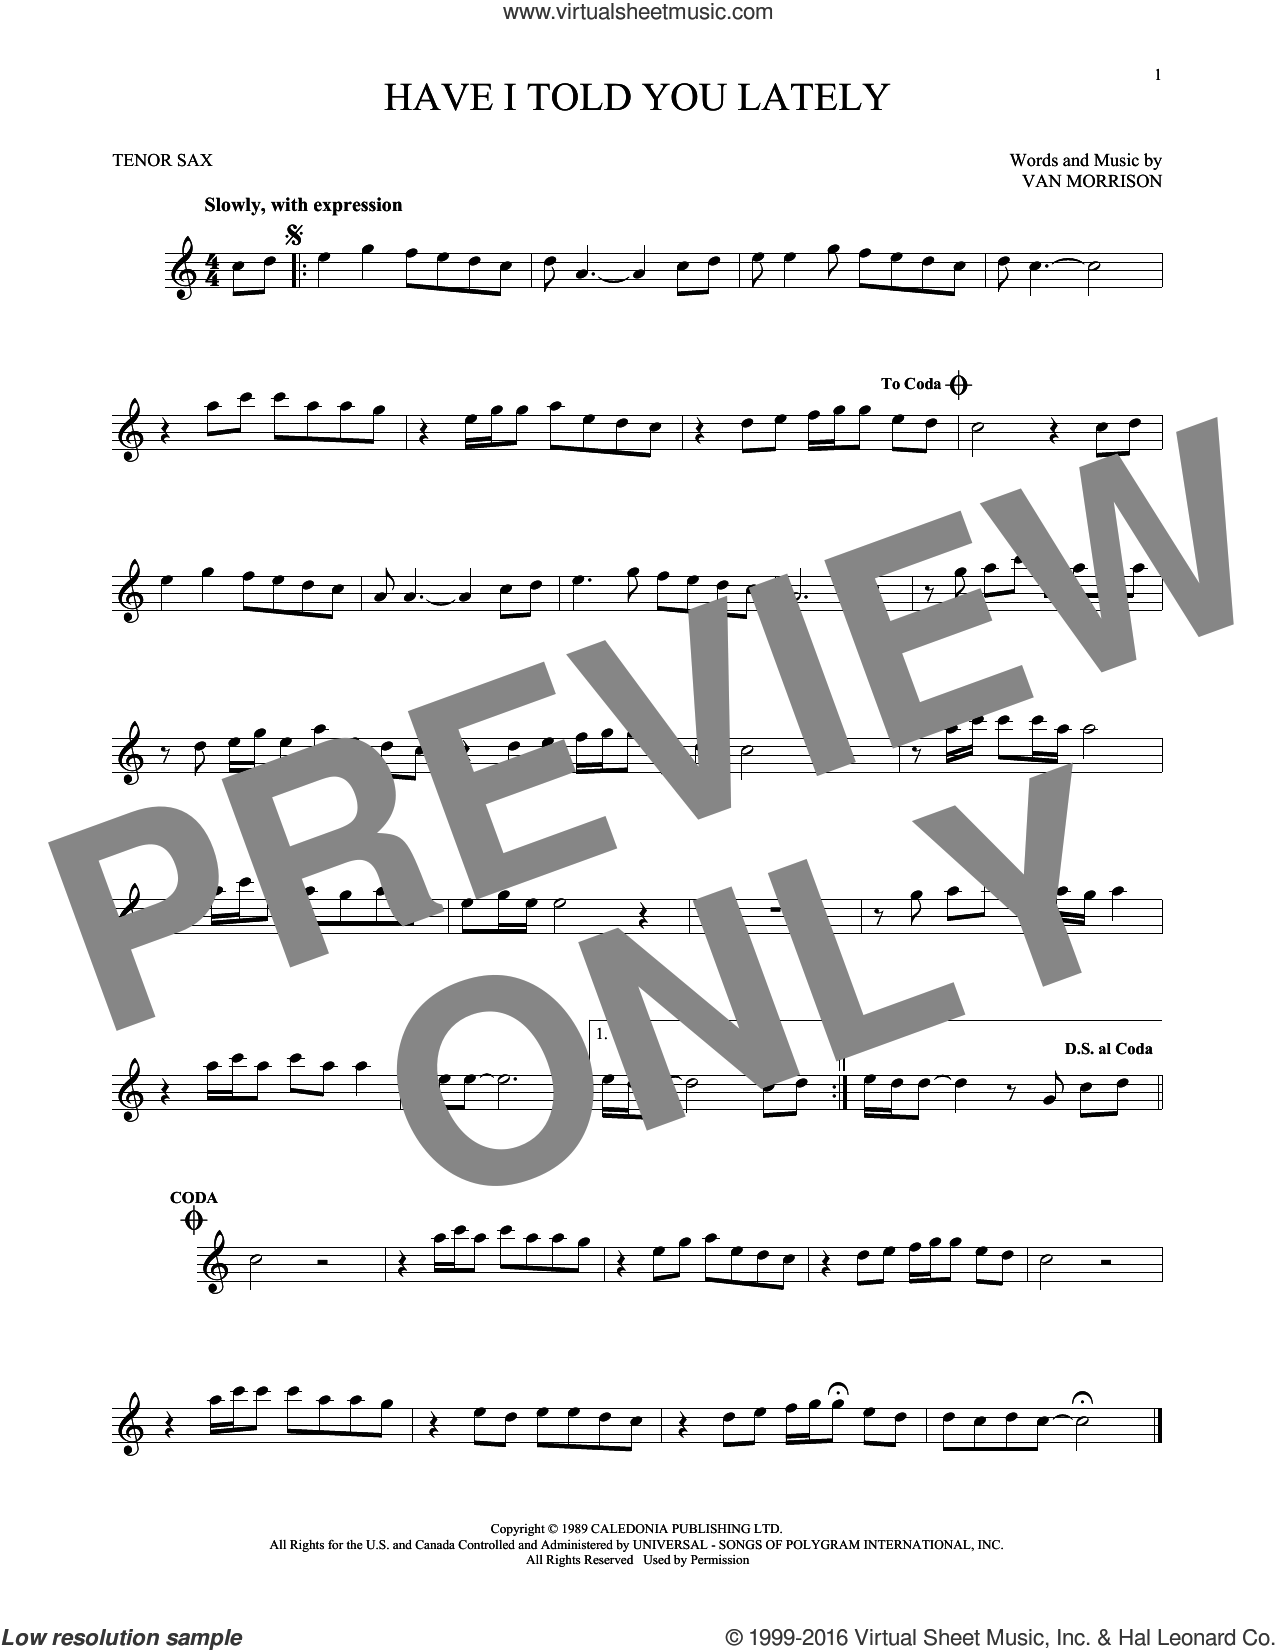 Have I Told You Lately sheet music for tenor saxophone solo by Van Morrison. Score Image Preview.